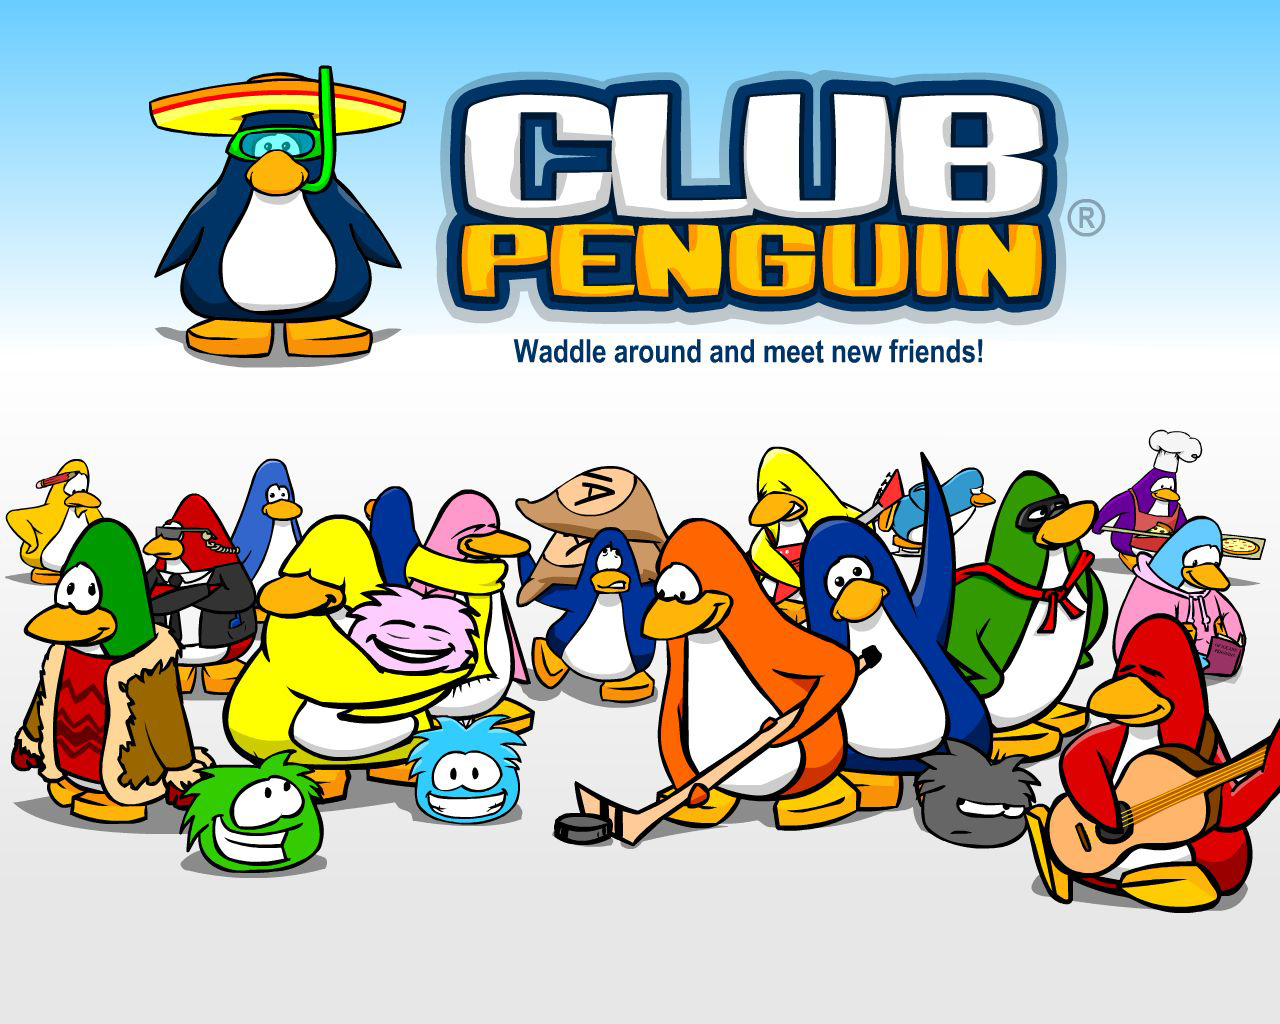 https://i0.wp.com/web.archive.org/web/20060327014527/www.clubpenguin.com/images/downloads/desktop1.jpg